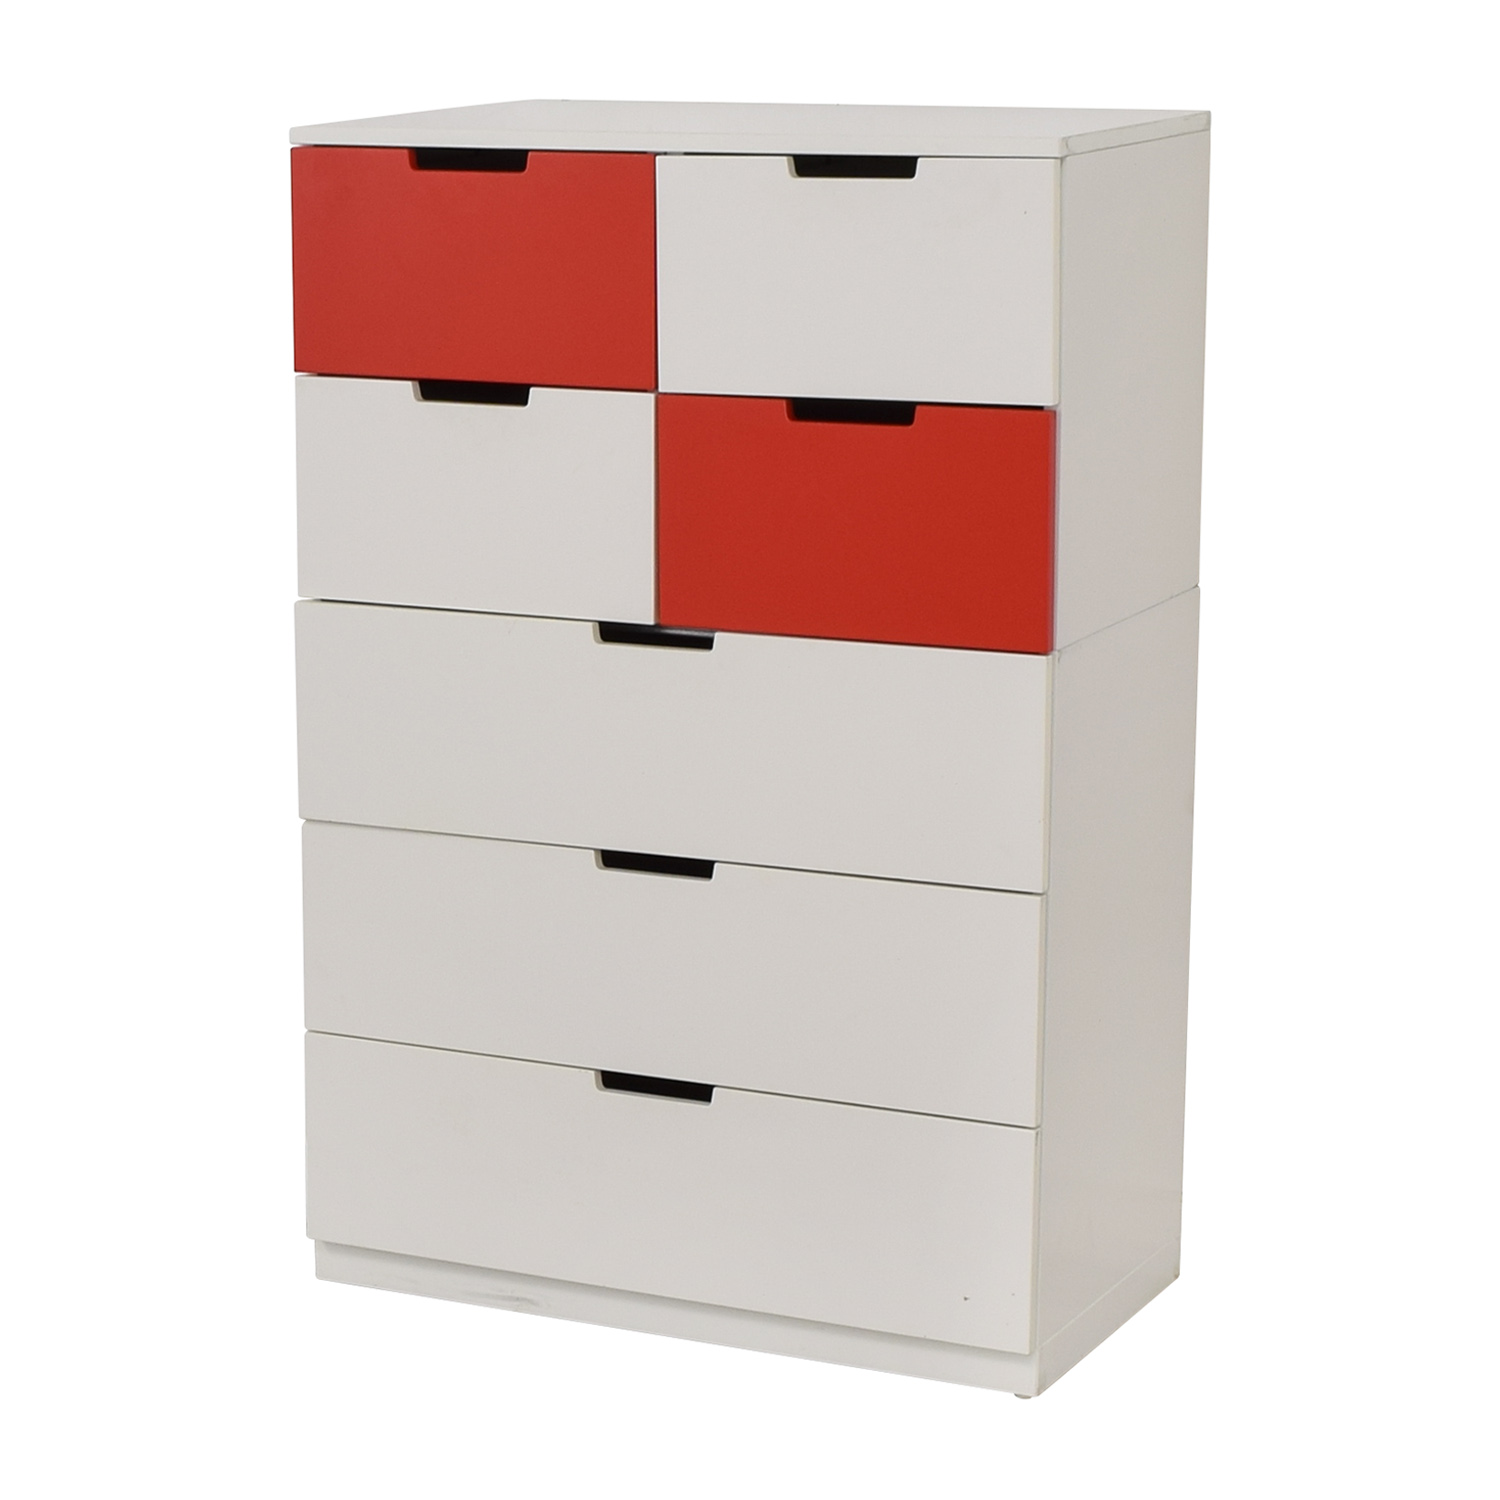 IKEA IKEA White and Red Seven-Drawer Unit dimensions